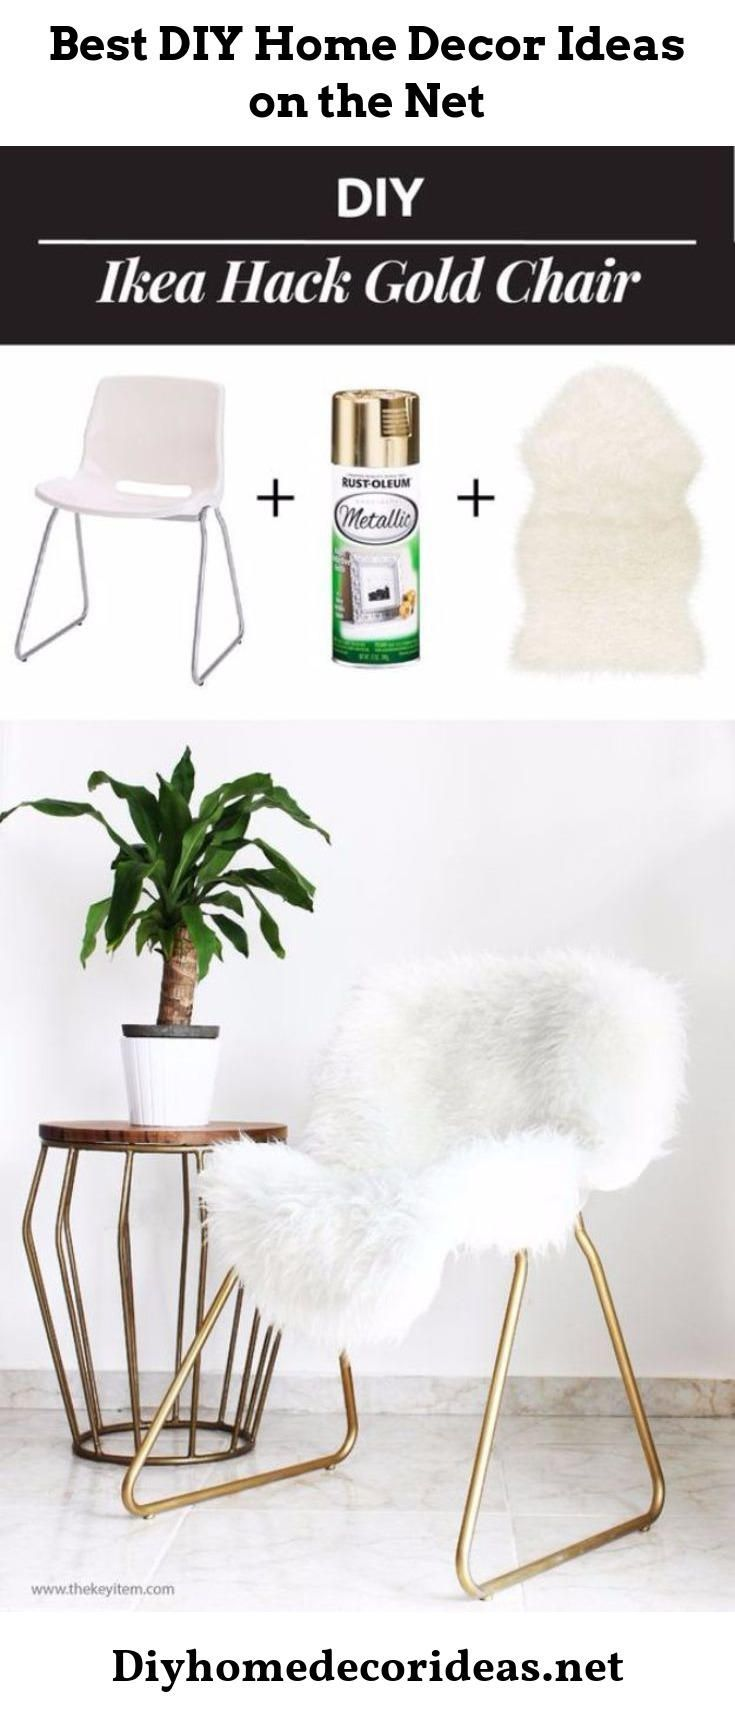 Find more information on DIY Home Decor. #DiyHomeDecor #HomeDecor  …Just click on the above pin for more info.